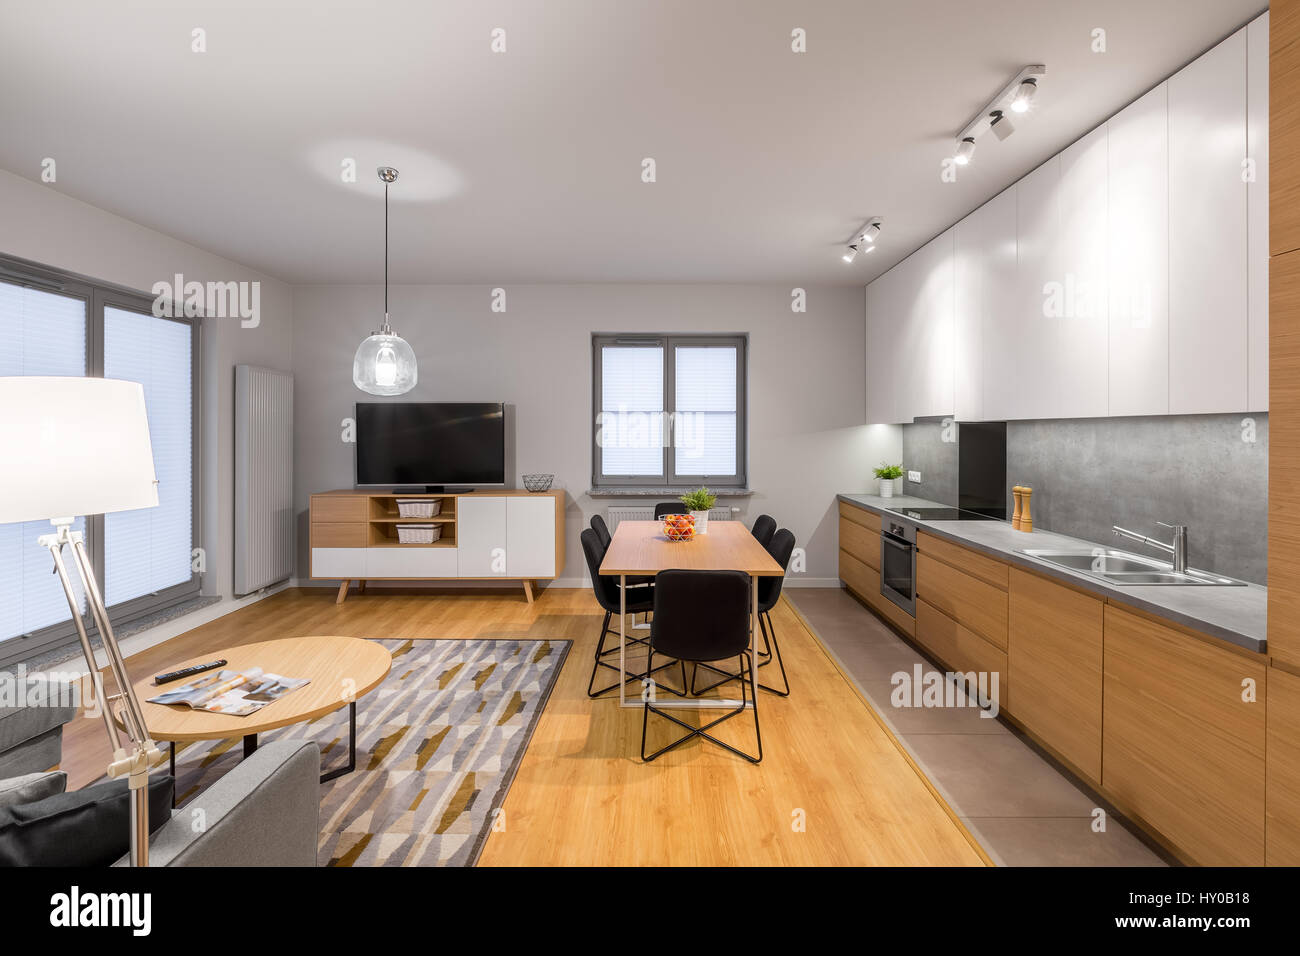 Multifunctional Modern Loft Apartment With Kitchen Dining Area Tv Living Room And Hardwood Floor